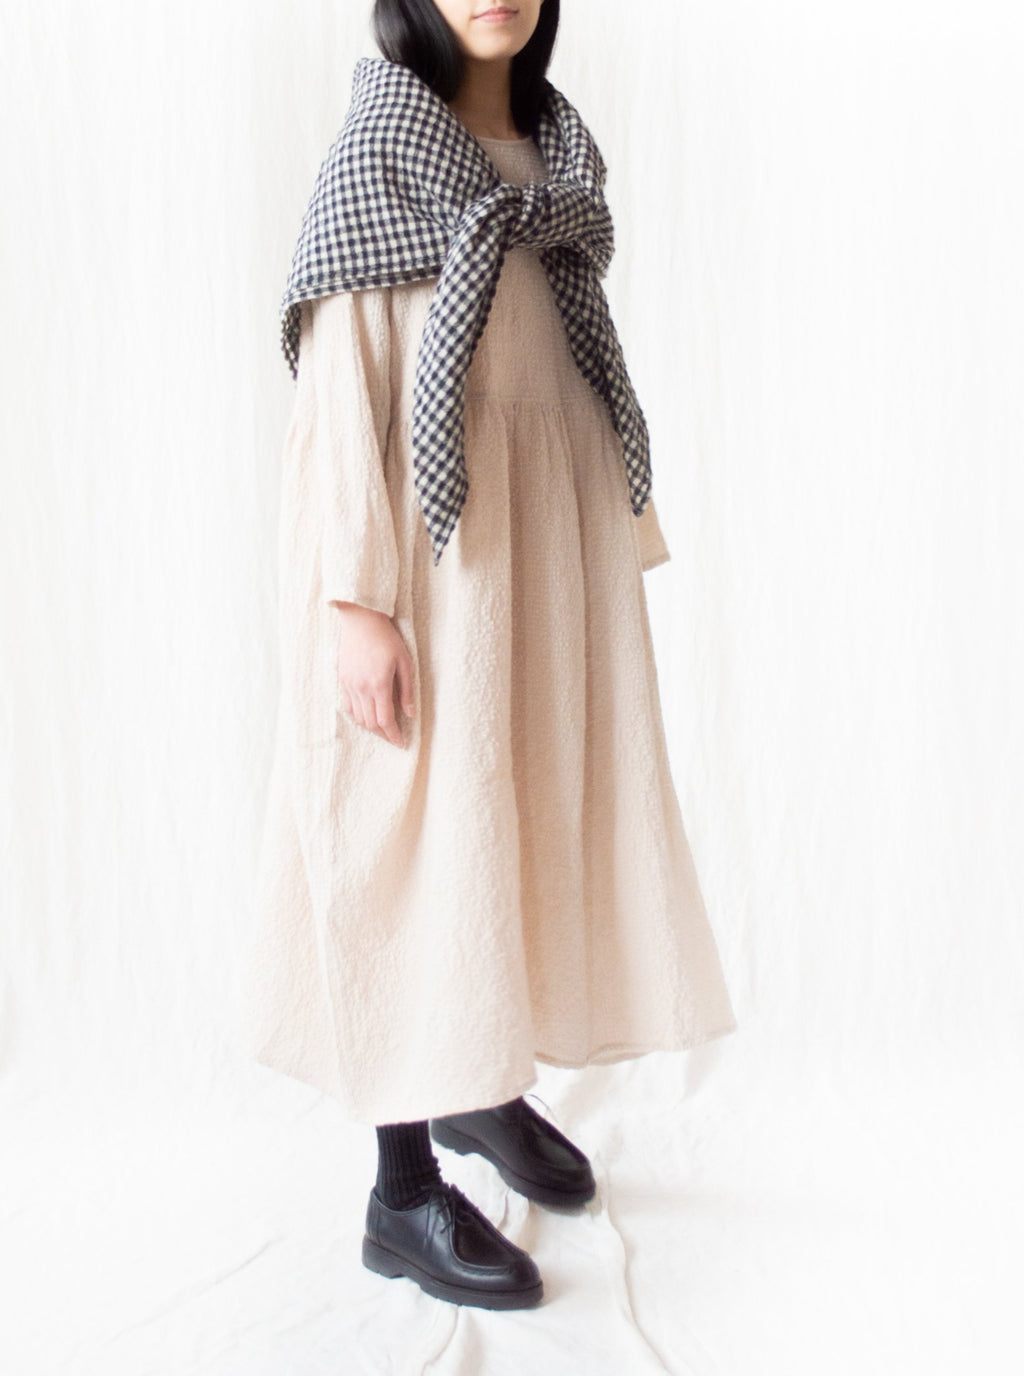 Cotton Wool Gingham Stole - Natural x Black